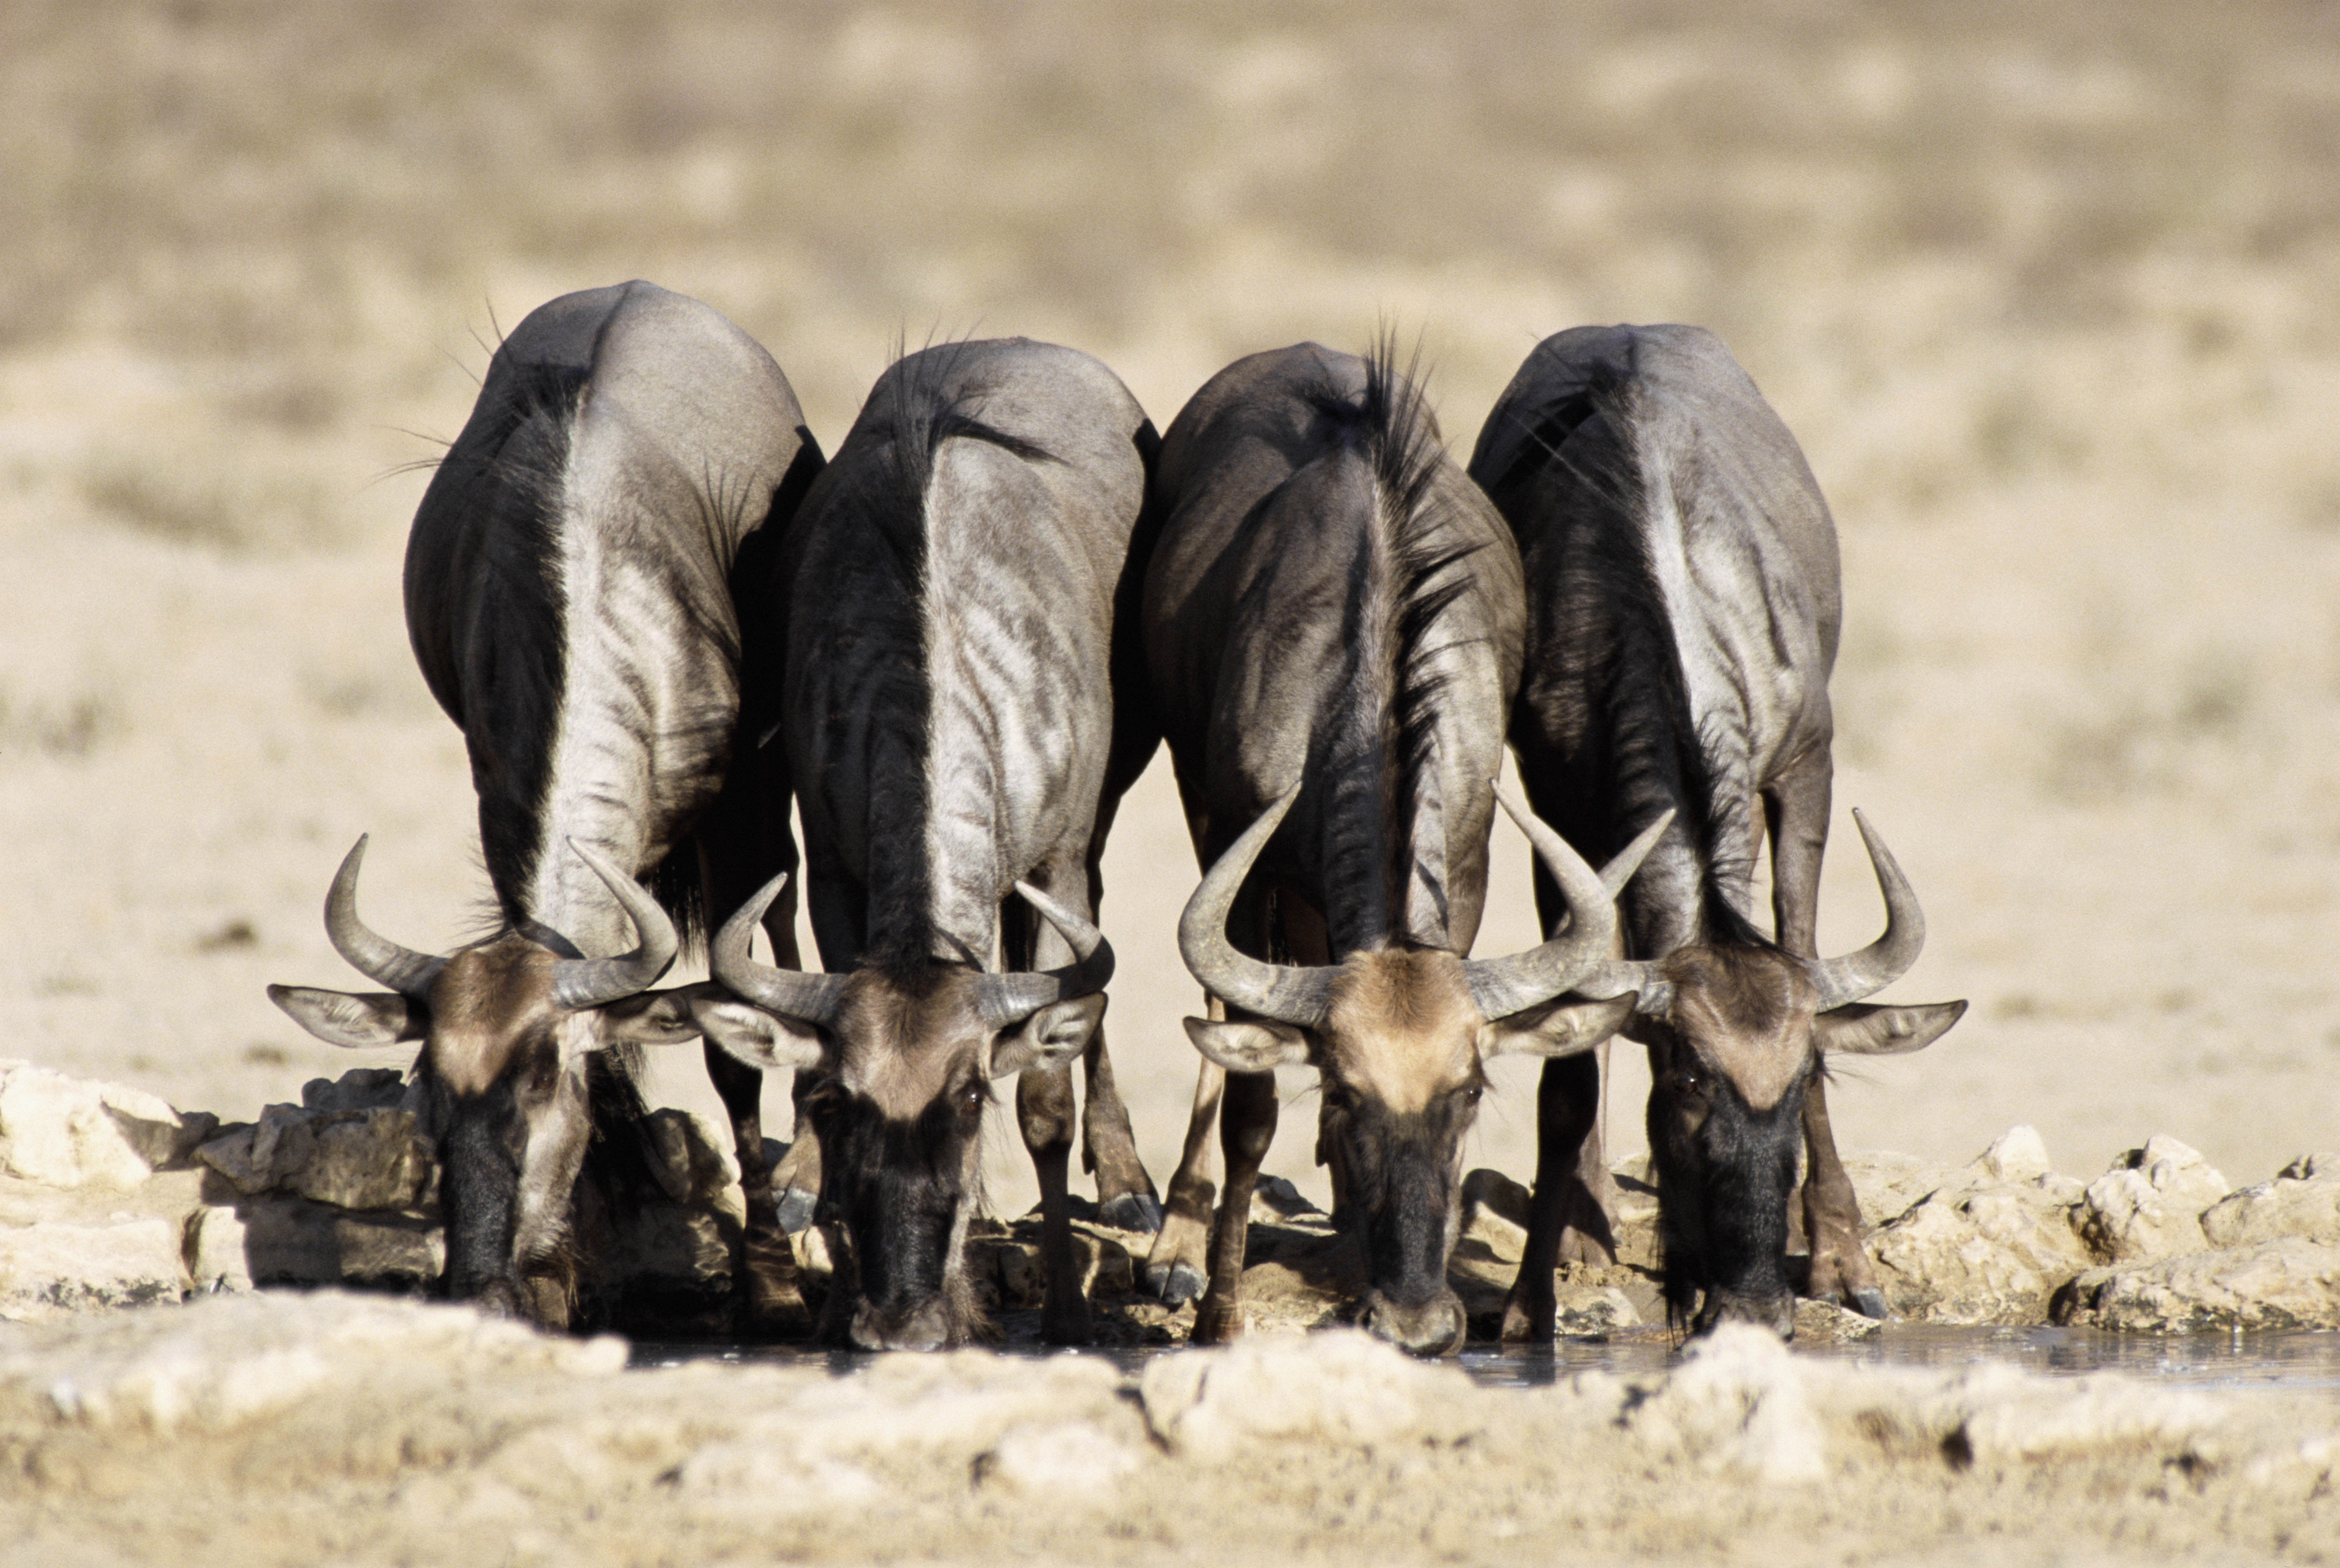 94014 download wallpaper Animals, Buffalo, Buffaloes, Waterhole, Watering, Horns screensavers and pictures for free